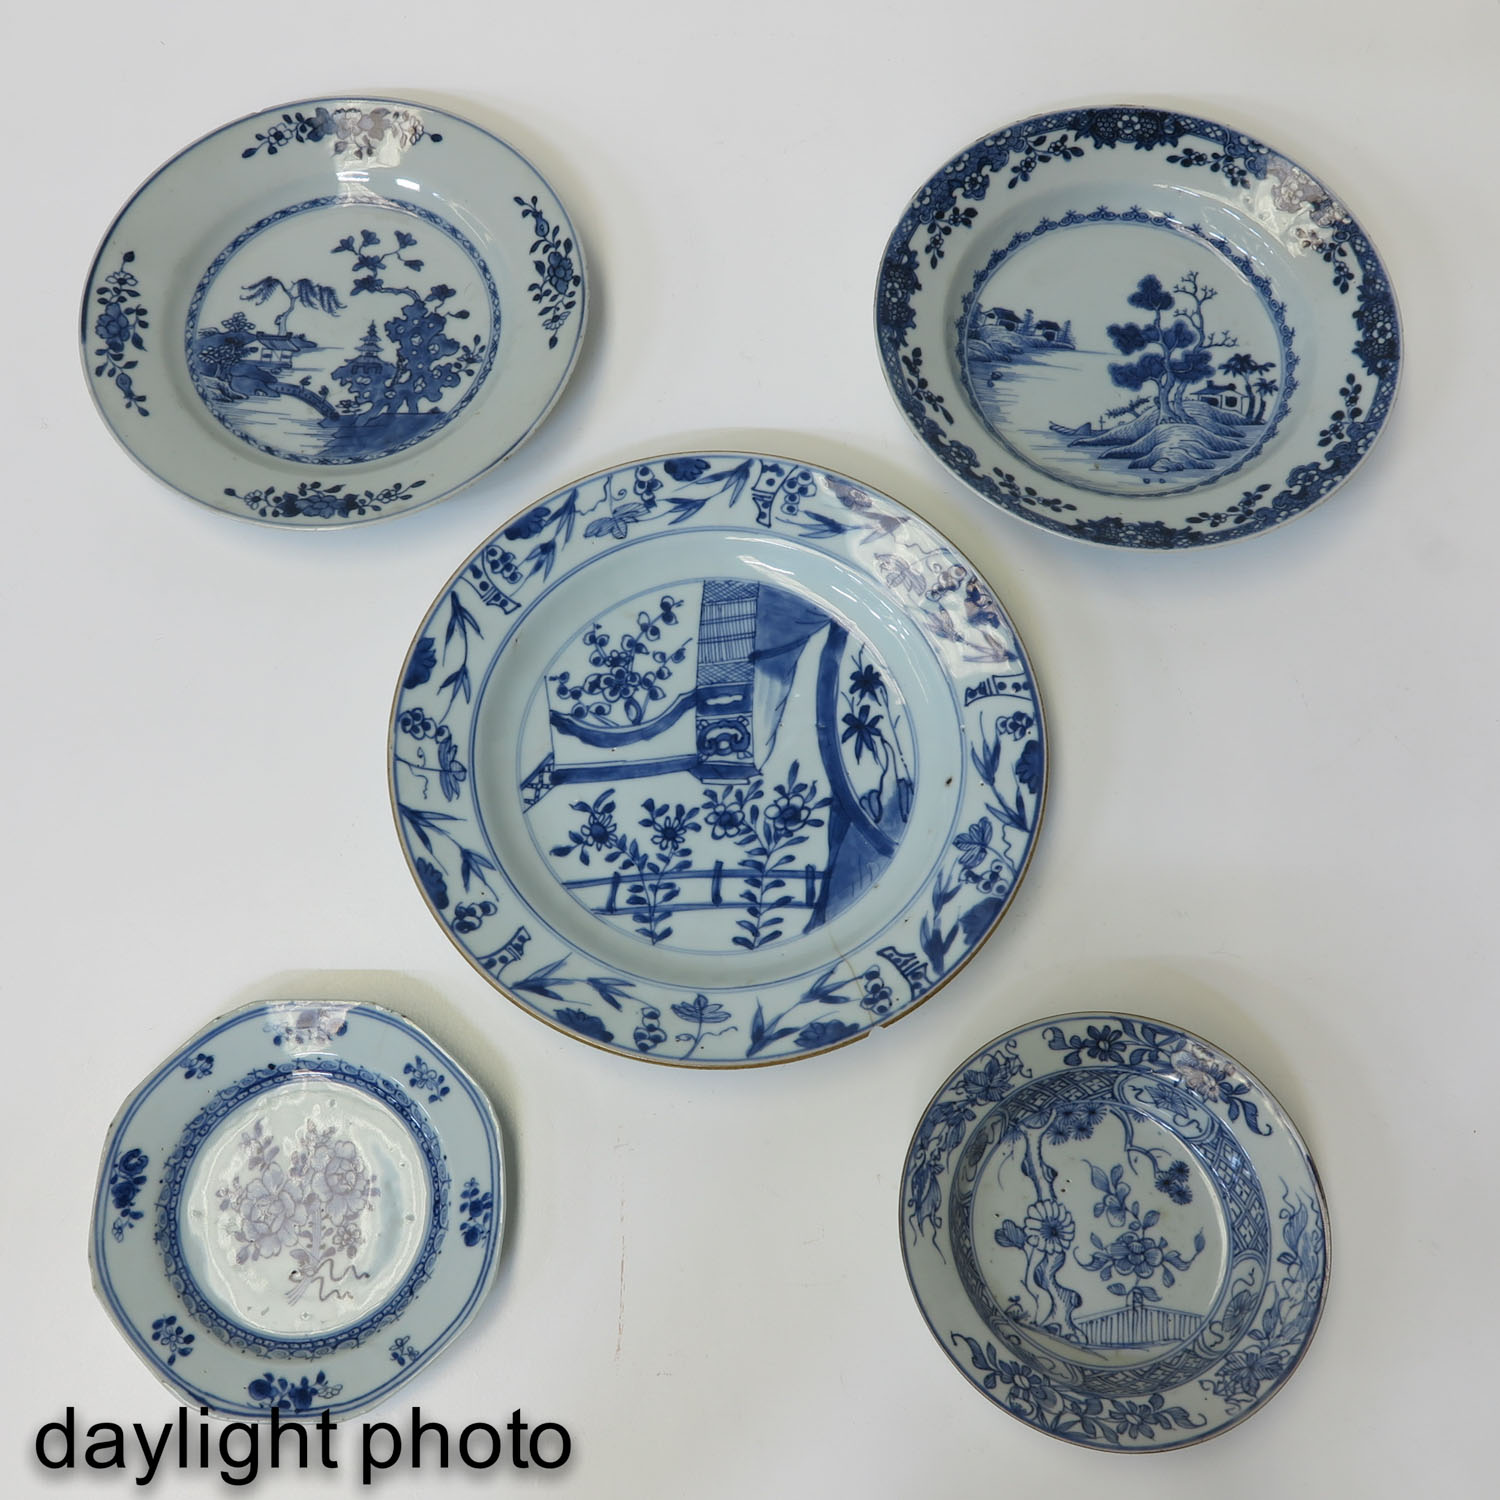 A Lot of 5 Blue and White Plates - Image 9 of 10